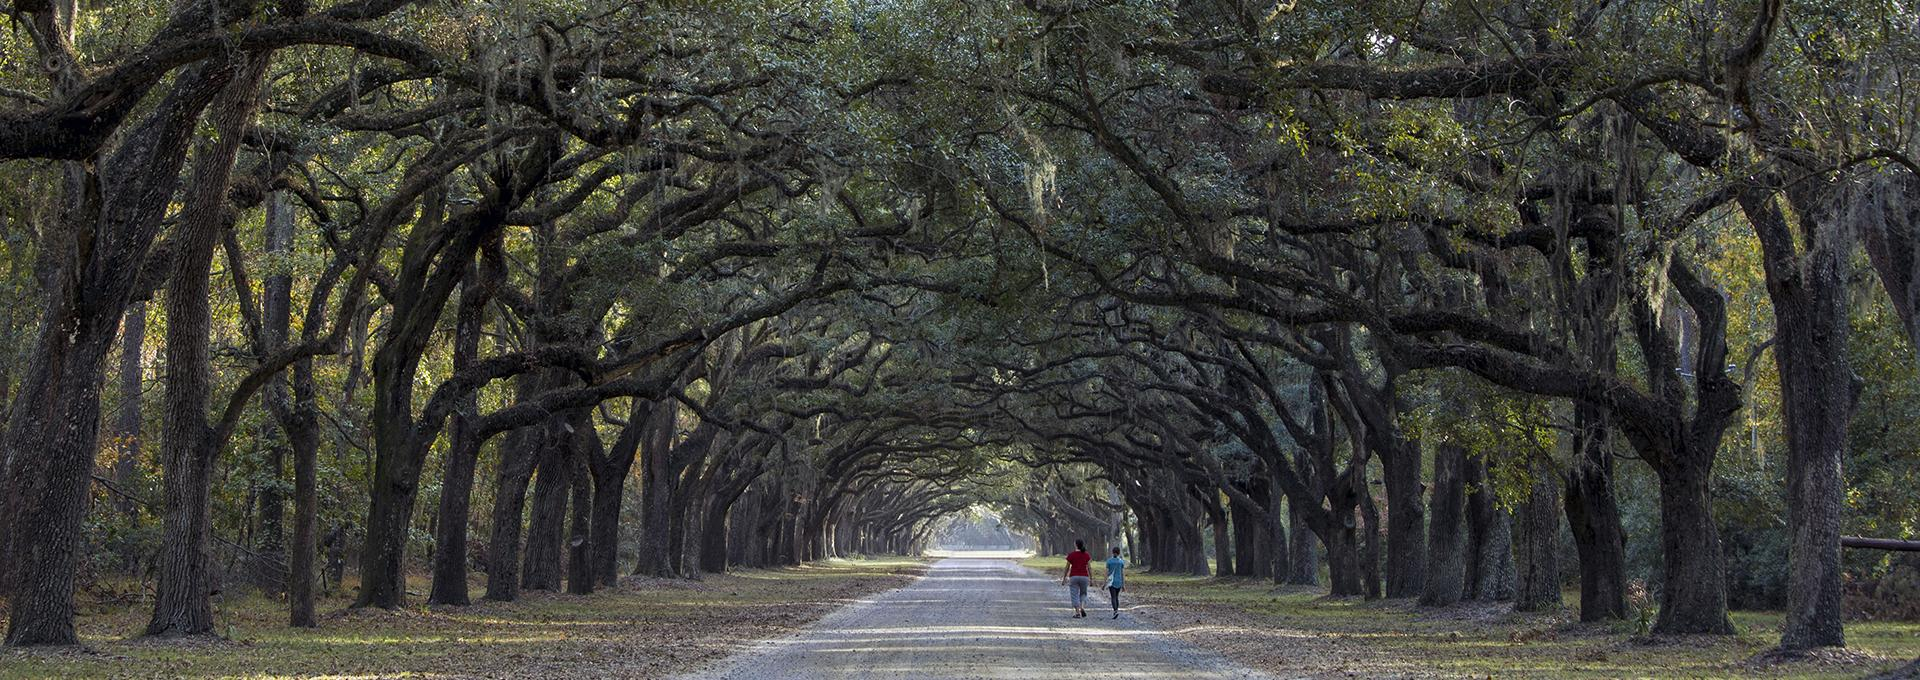 A pair of people riding bikes through a grove of trees in the Carolinas